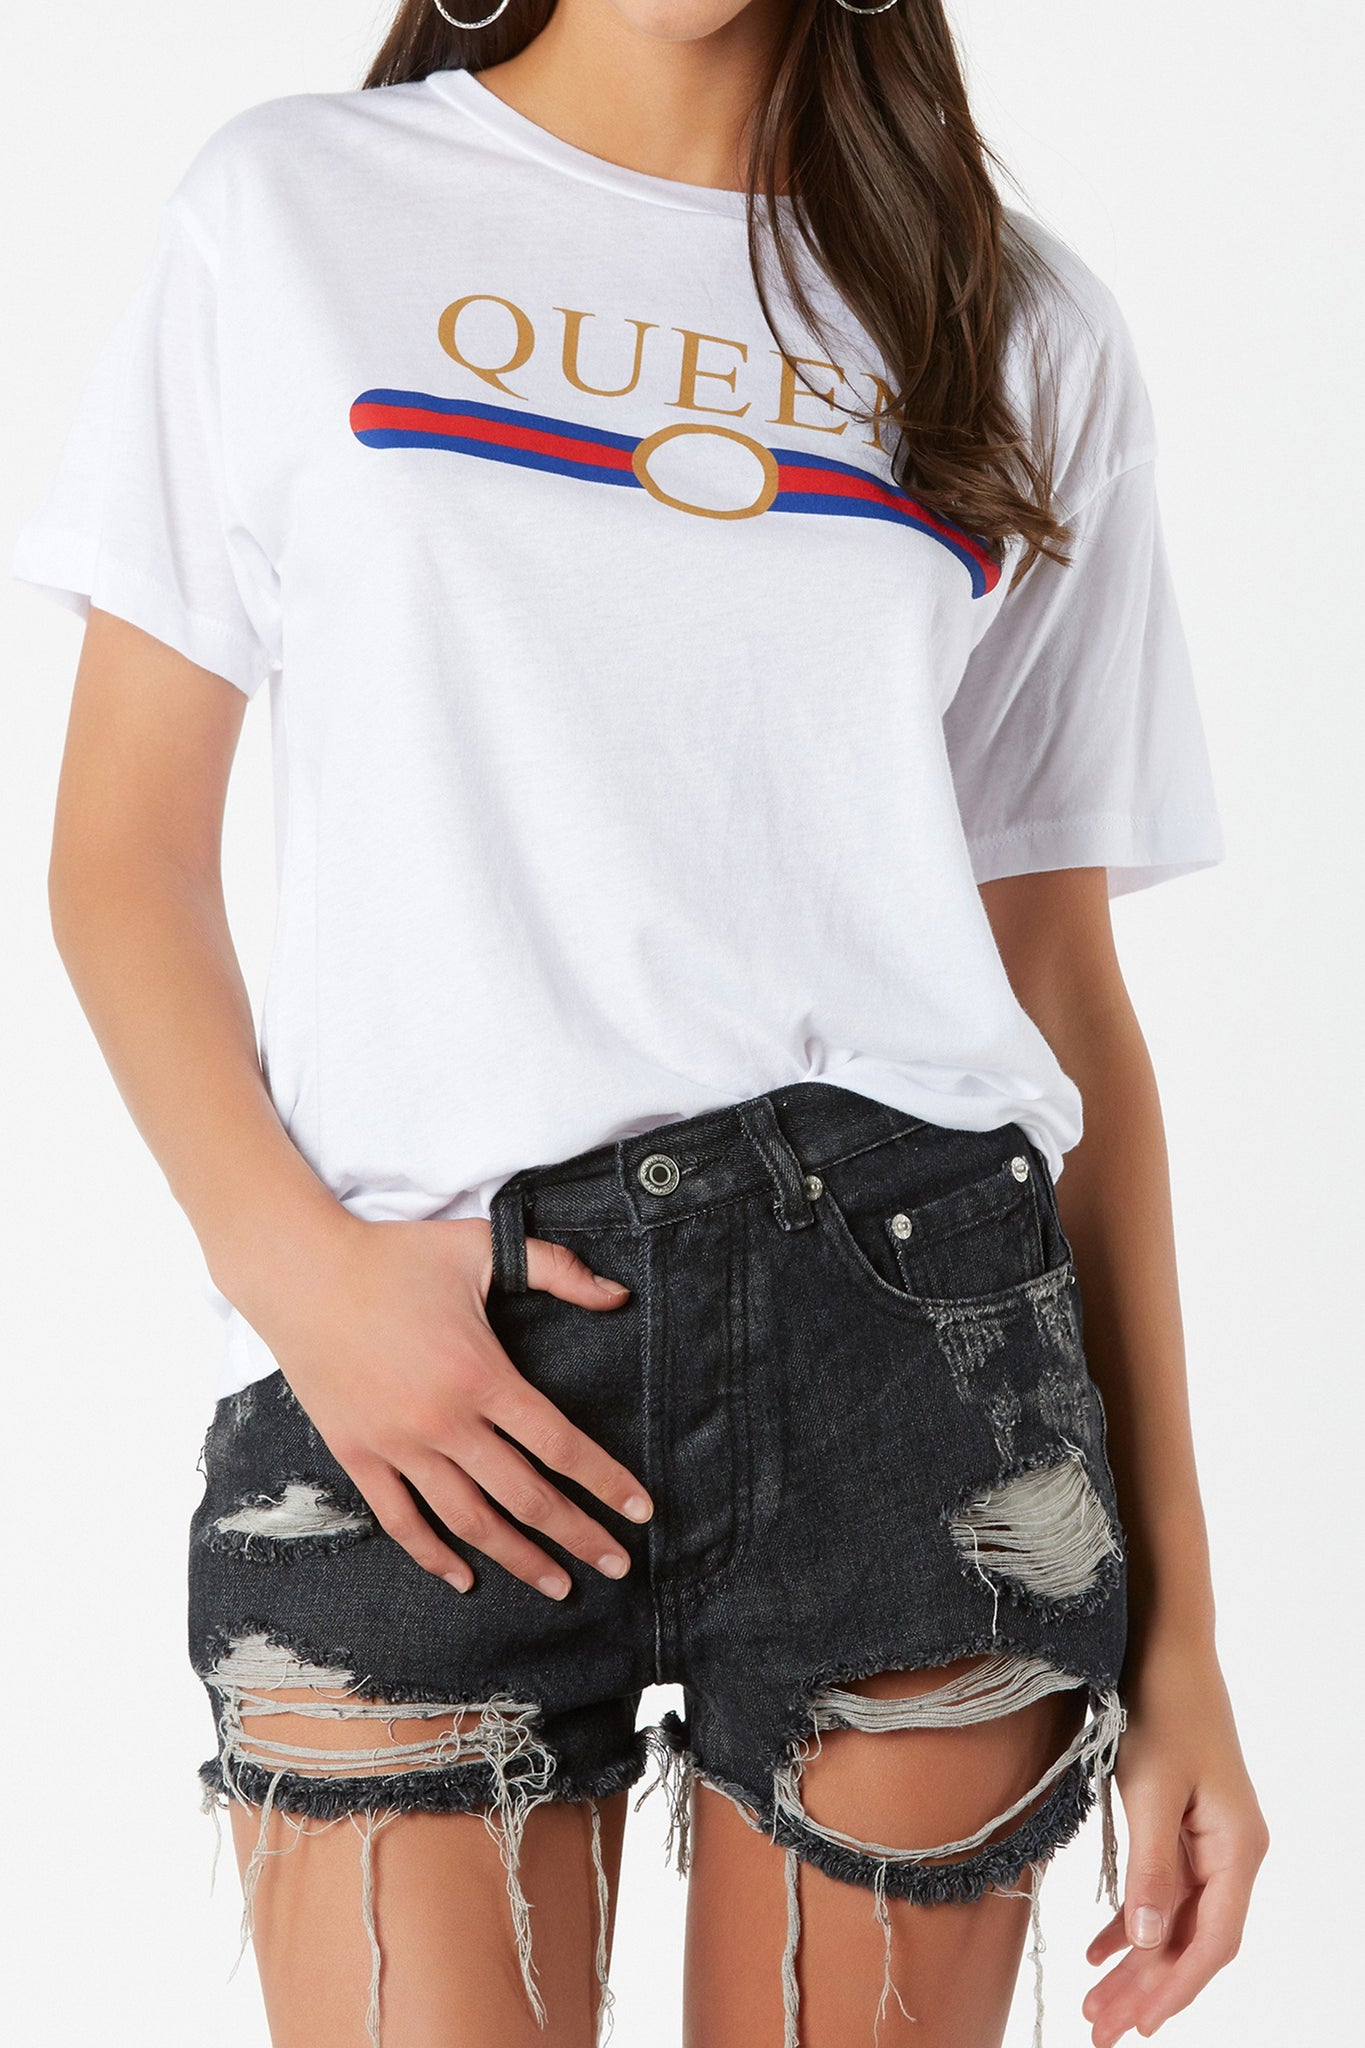 Queen Graphic BF Tee